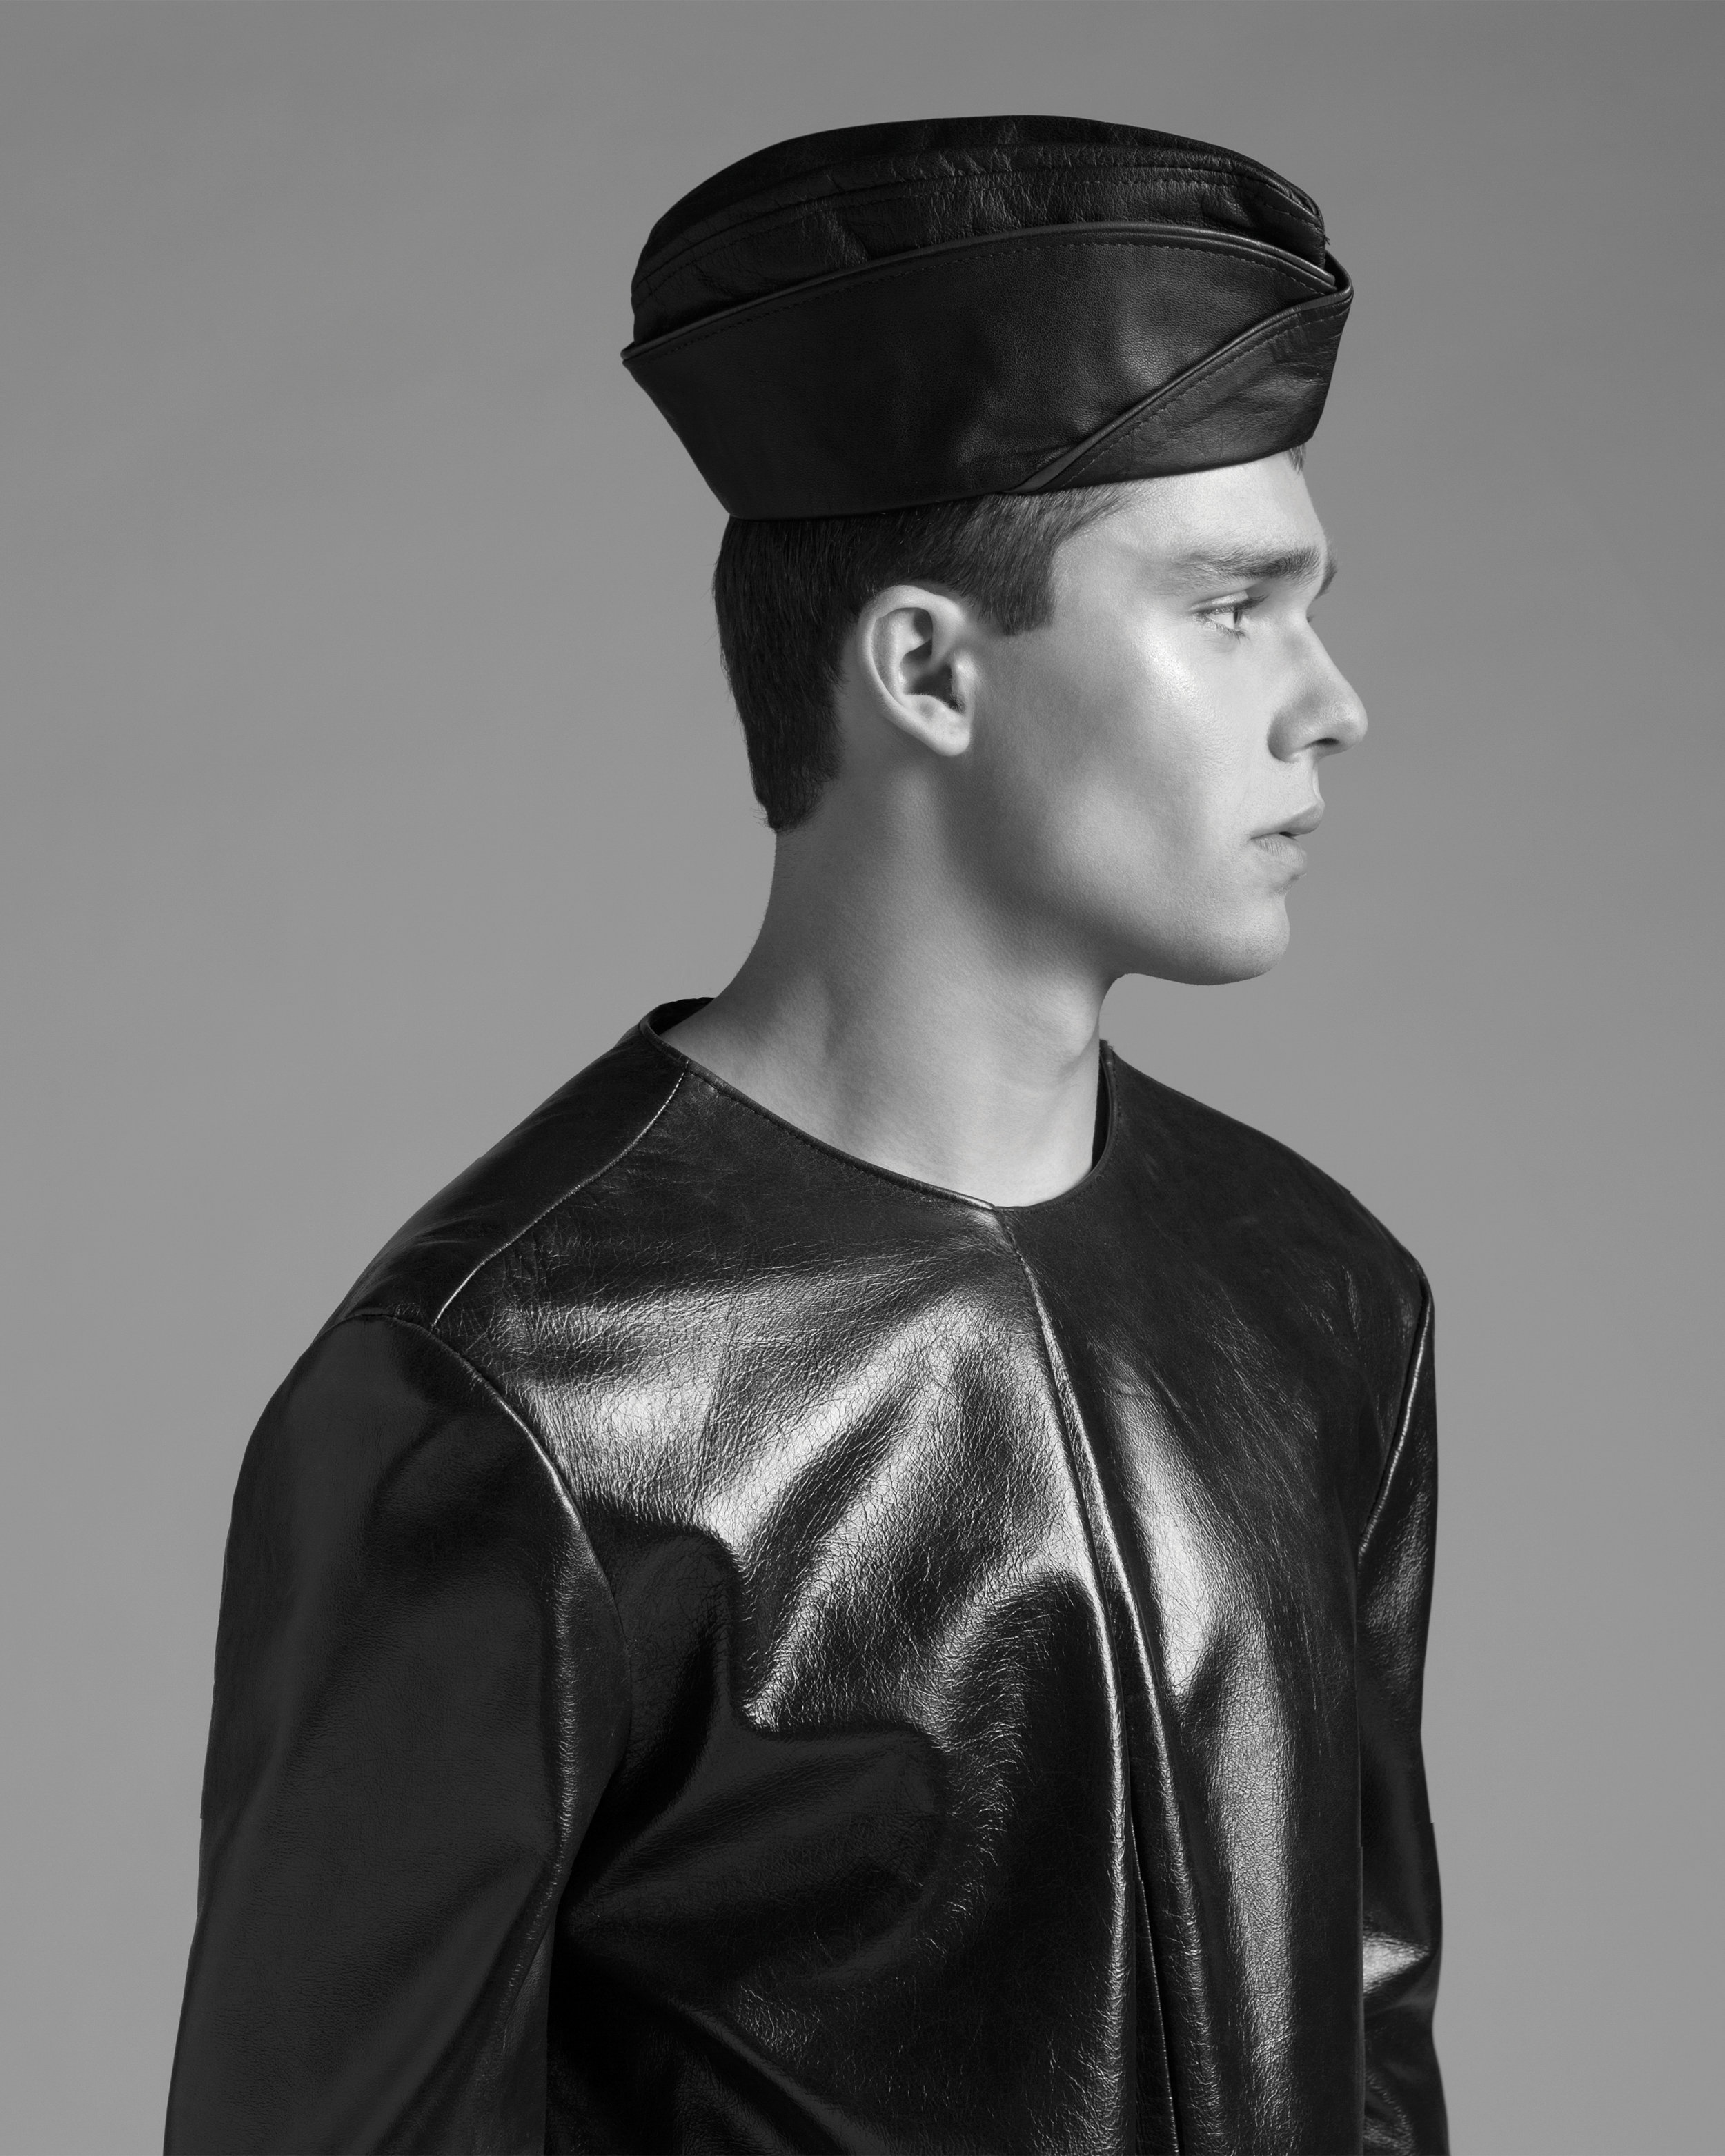 Leather Sweatshirt by Antonio Luna, BFA Fashion Design. Hat, stylist's own.